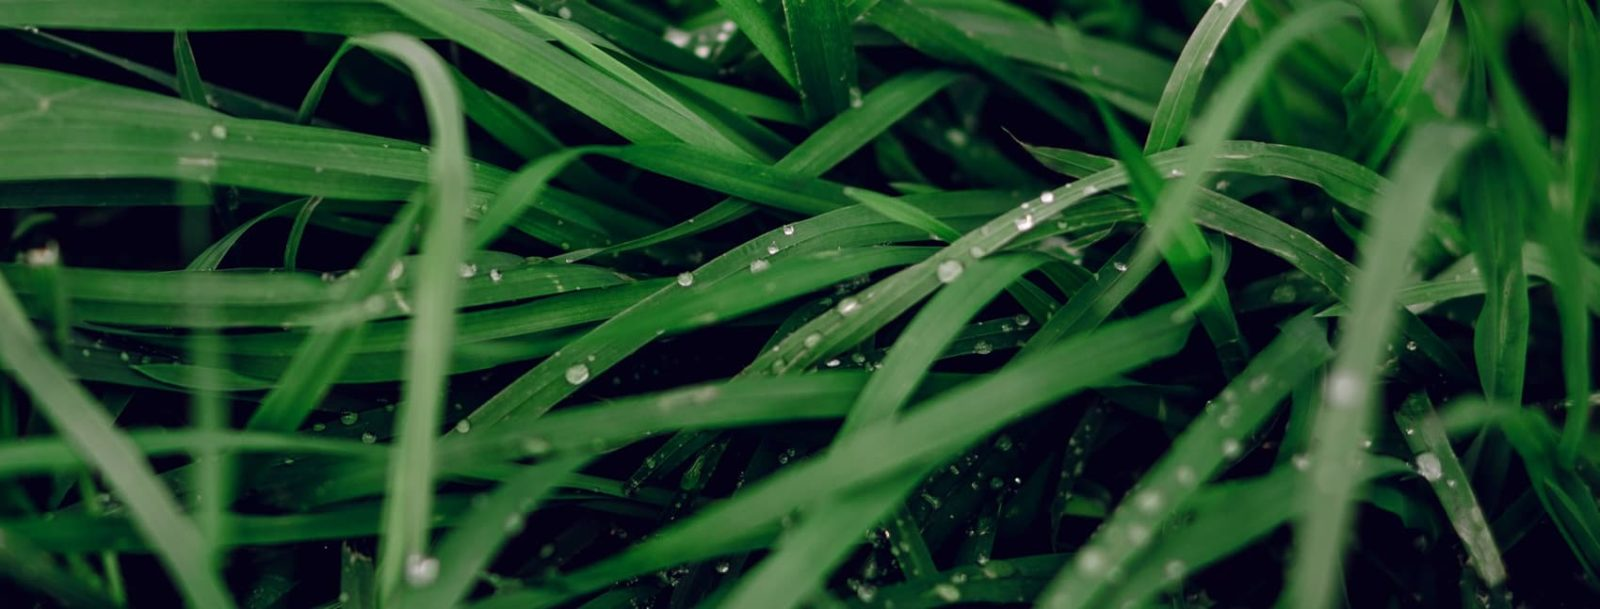 lush green grass with water droplets